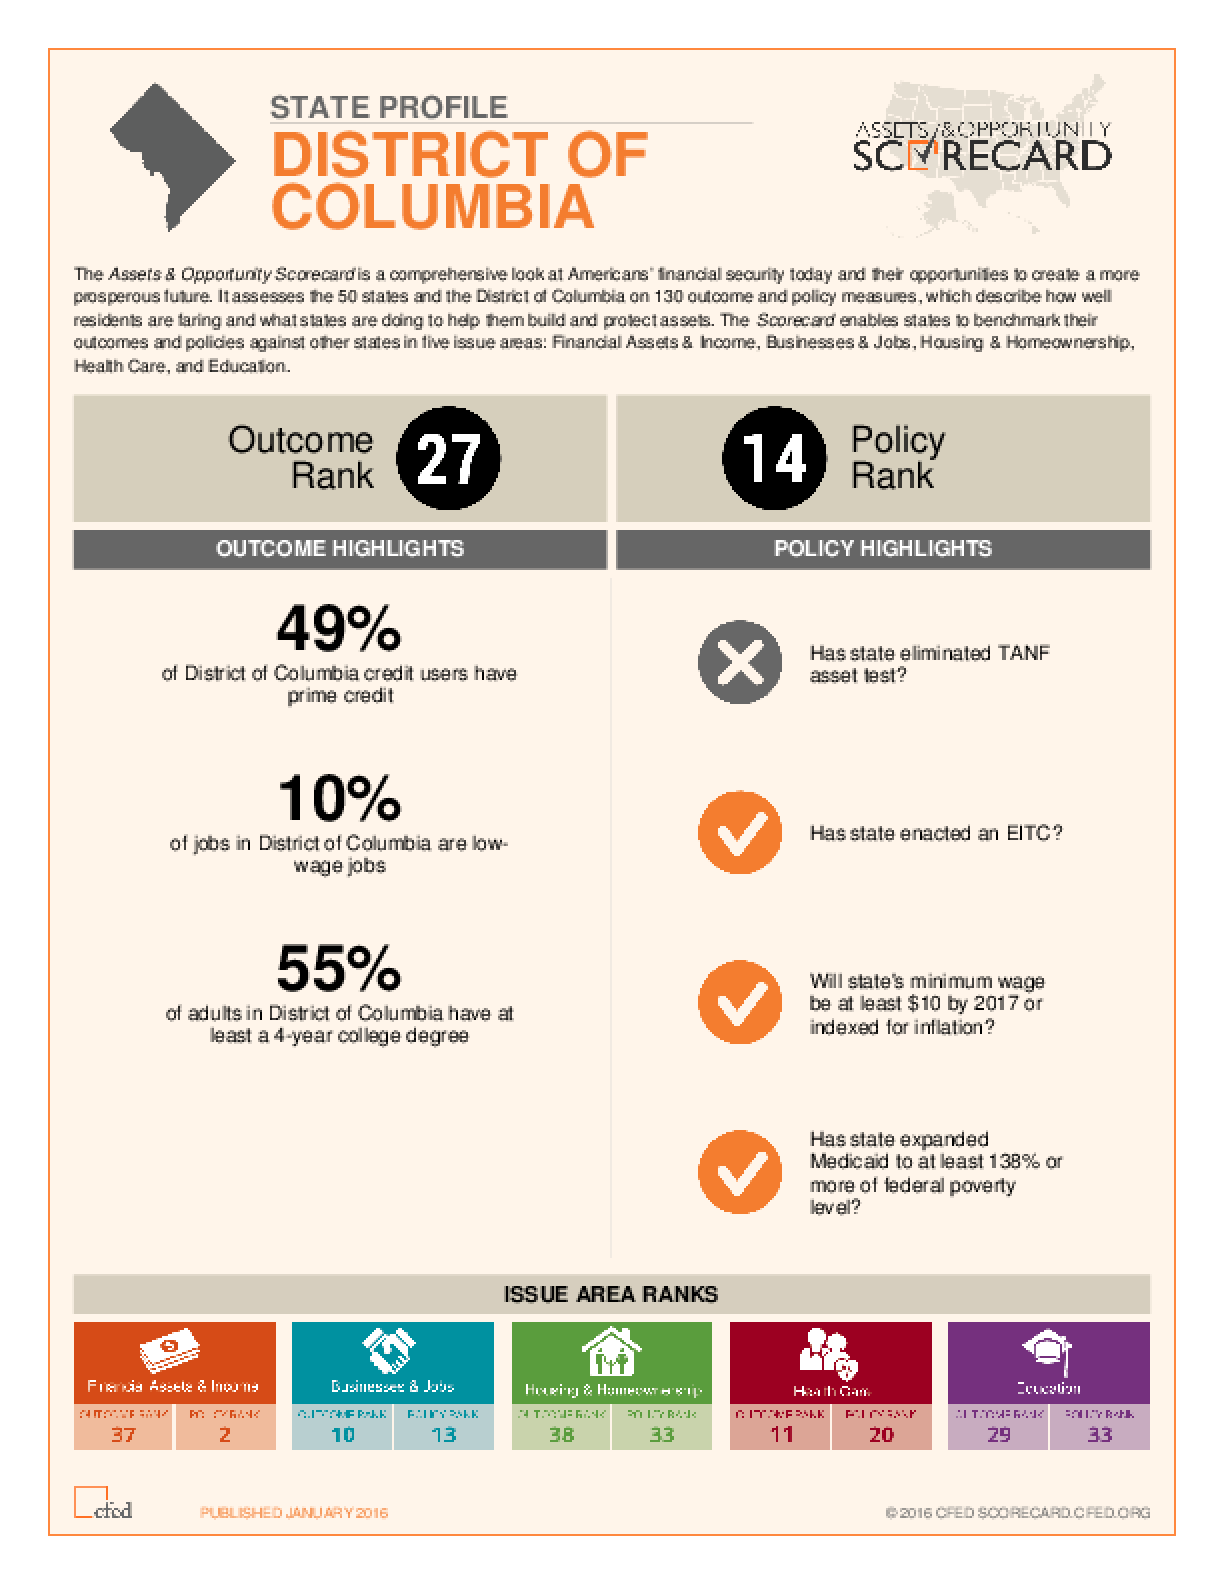 State Profile District of Columbia: Assets and Opportunity Scorecard